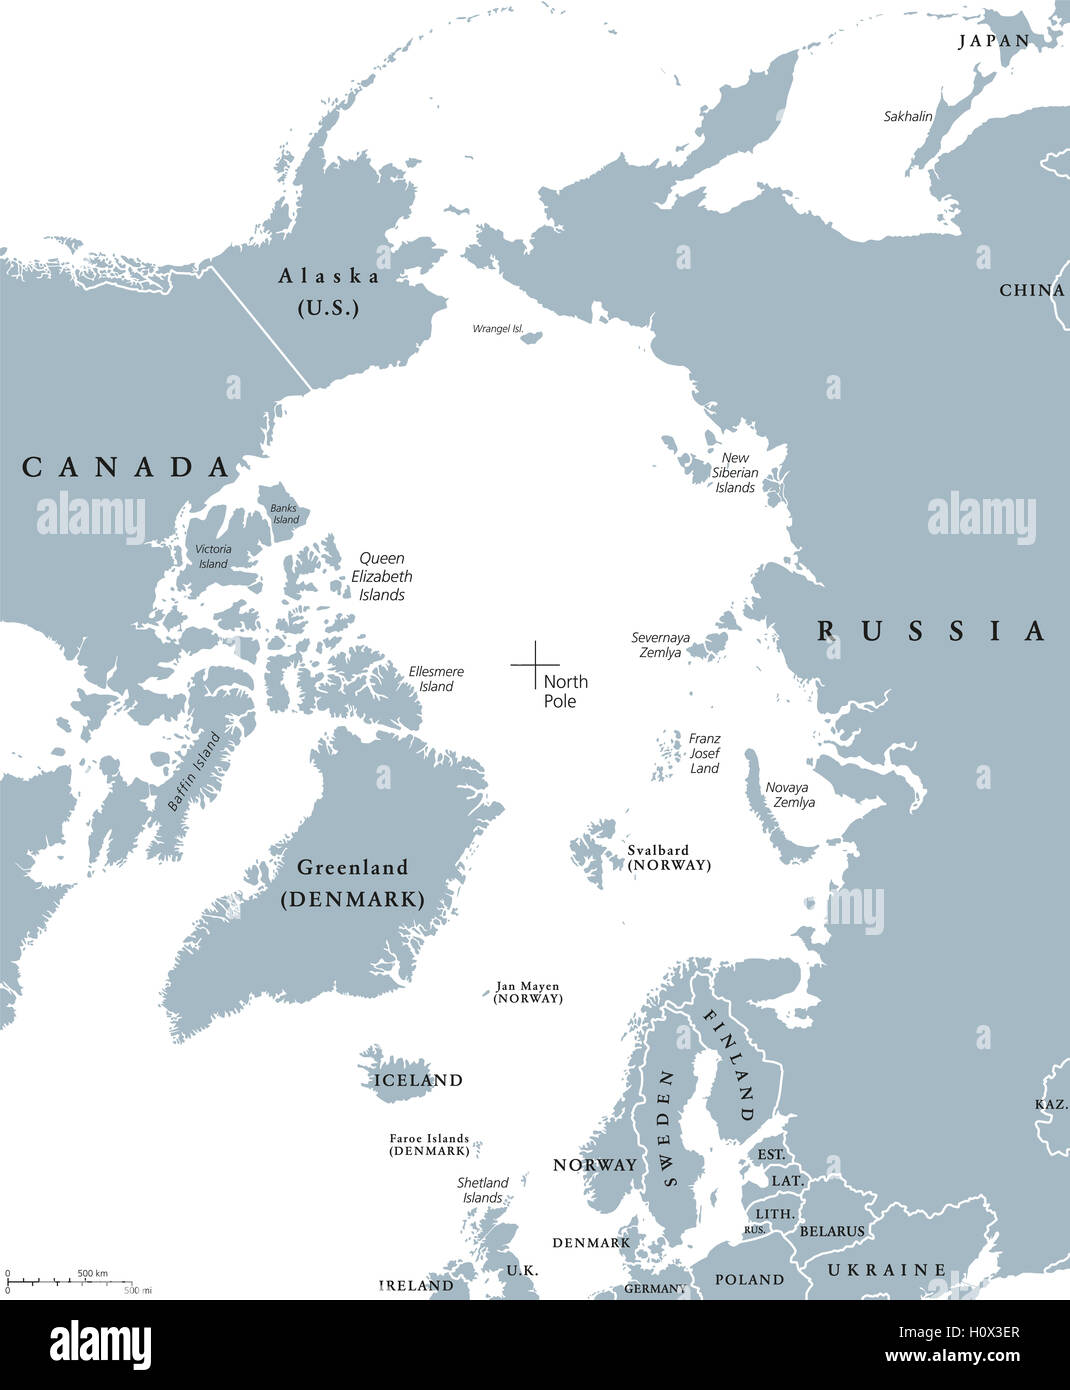 Arctic region countries and north pole political map with national arctic region countries and north pole political map with national borders and country names arctic ocean without sea ice publicscrutiny Image collections